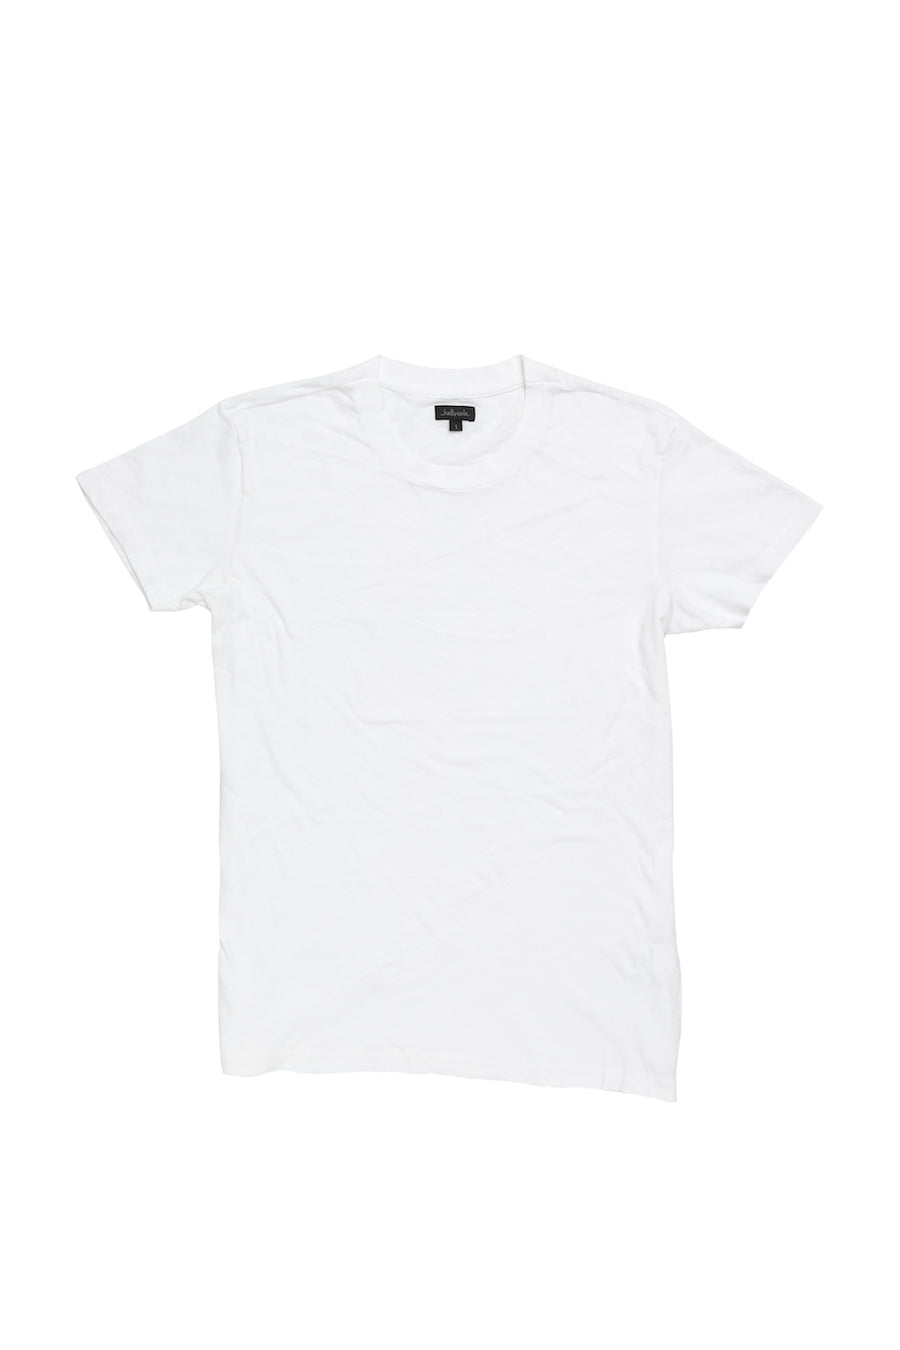 Kelly Cole Signature Short Sleeved Crewneck T Shirt - Optic White